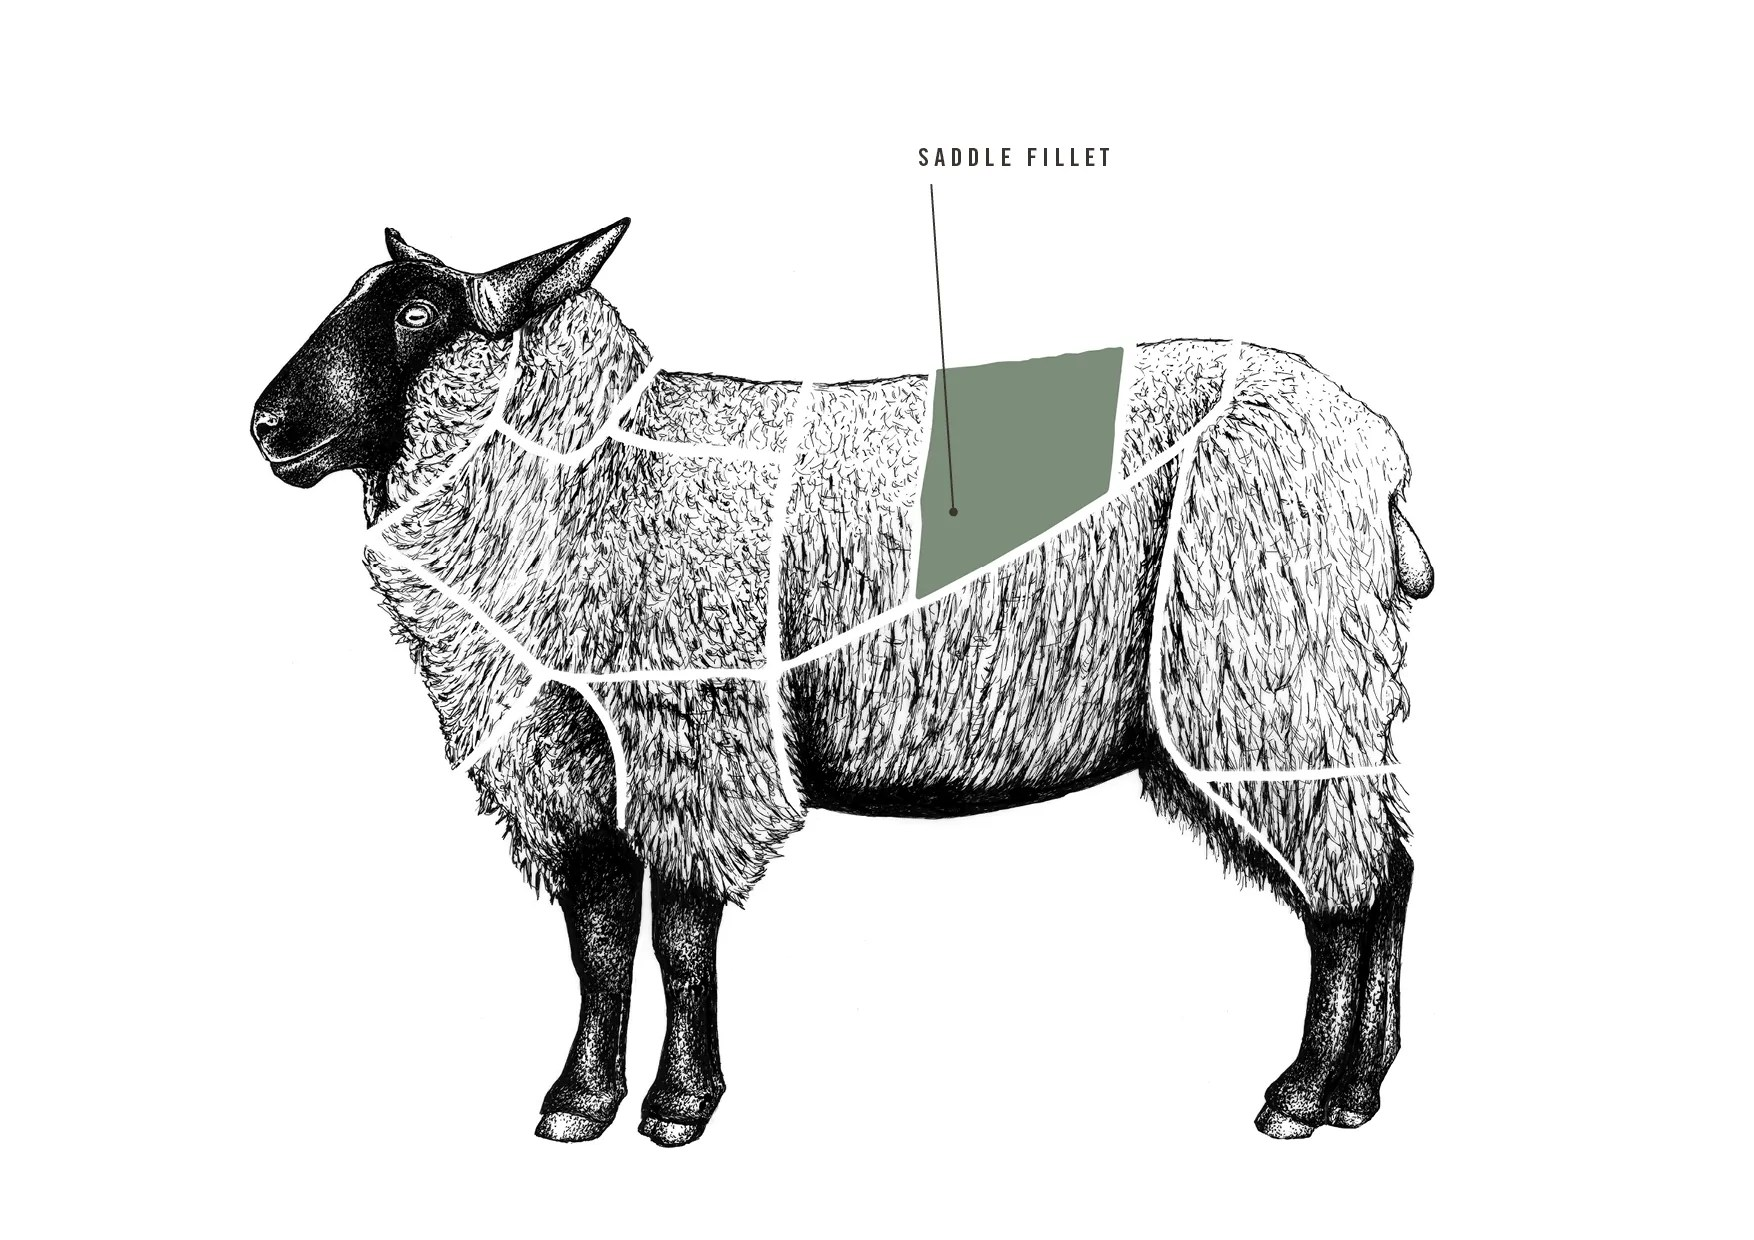 hight resolution of saddle fillet of lamb meat cuts diagram